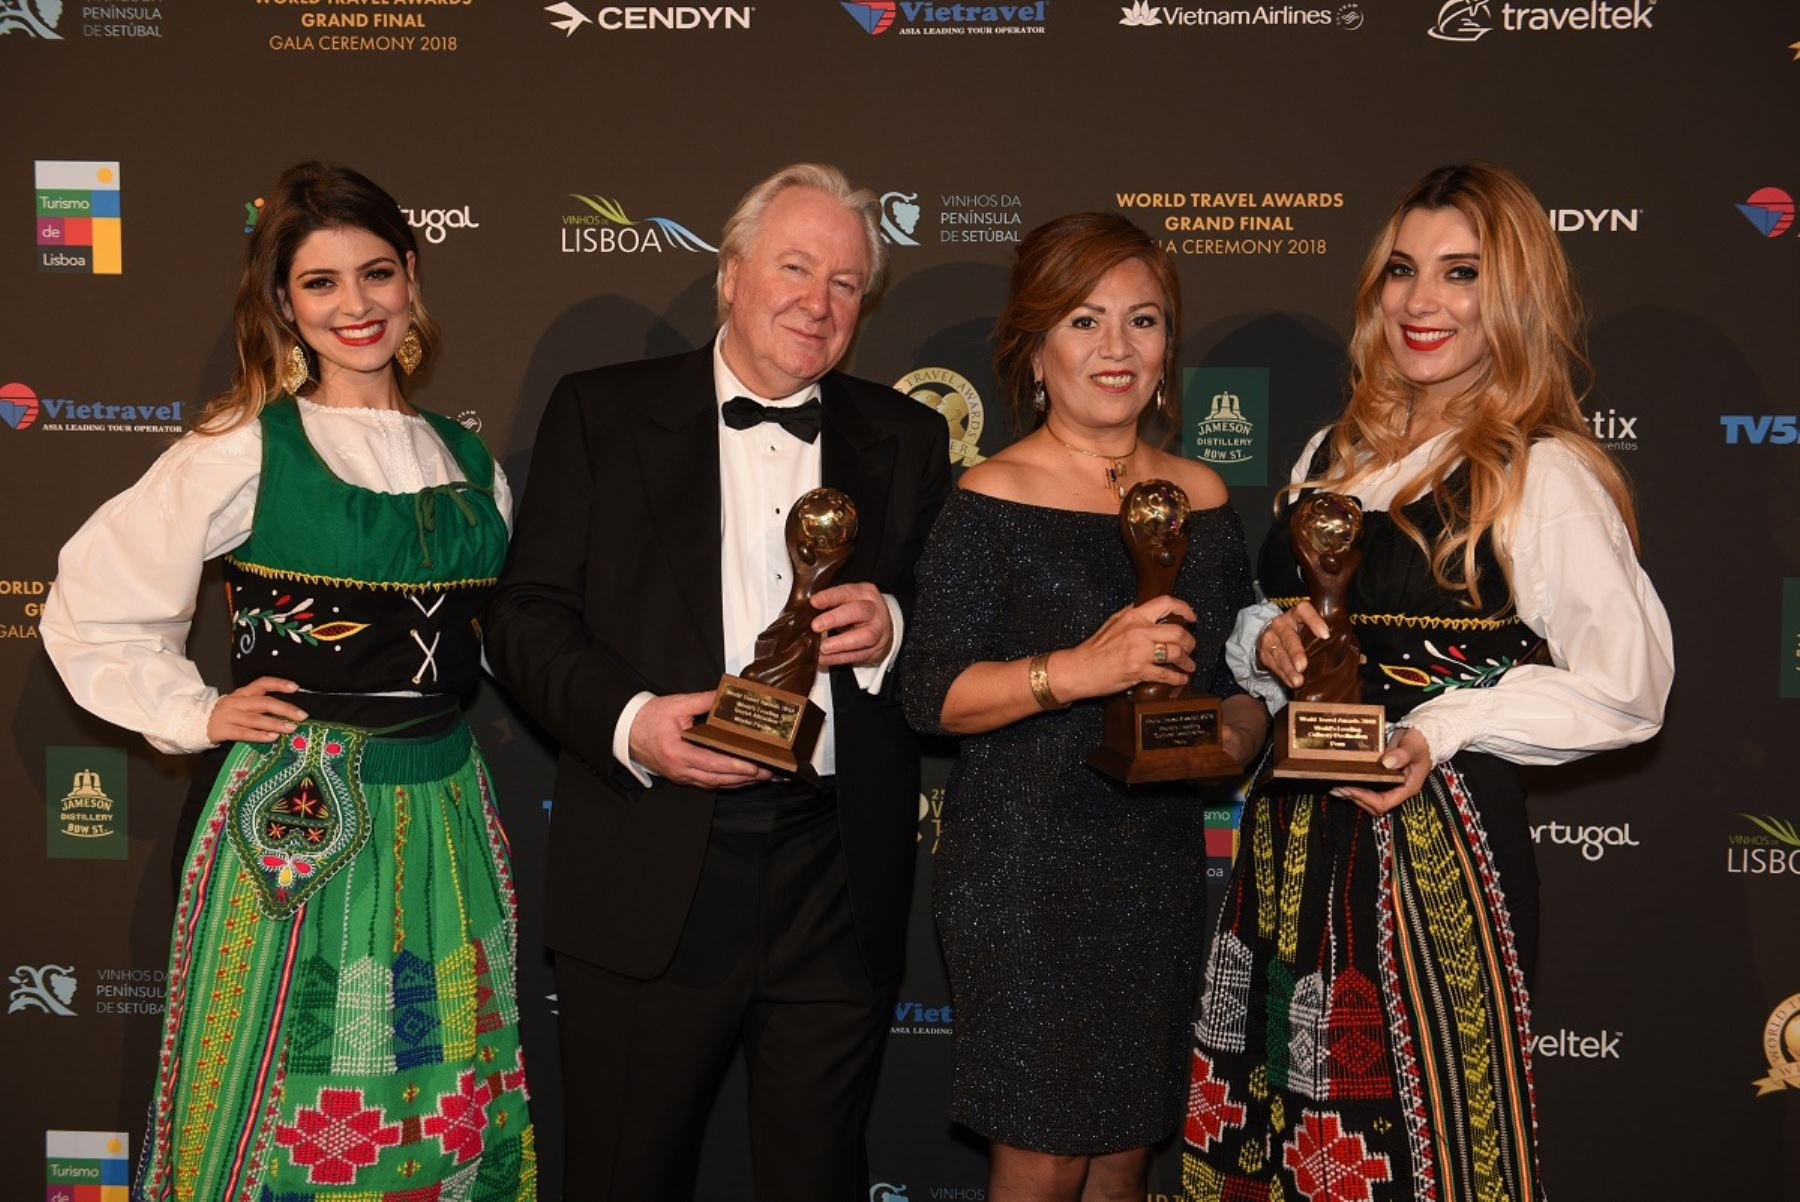 Premios del Perú en el World Travel Awards 2018 celebrado en Lisboa, Portugal. Foto: Cortesía.